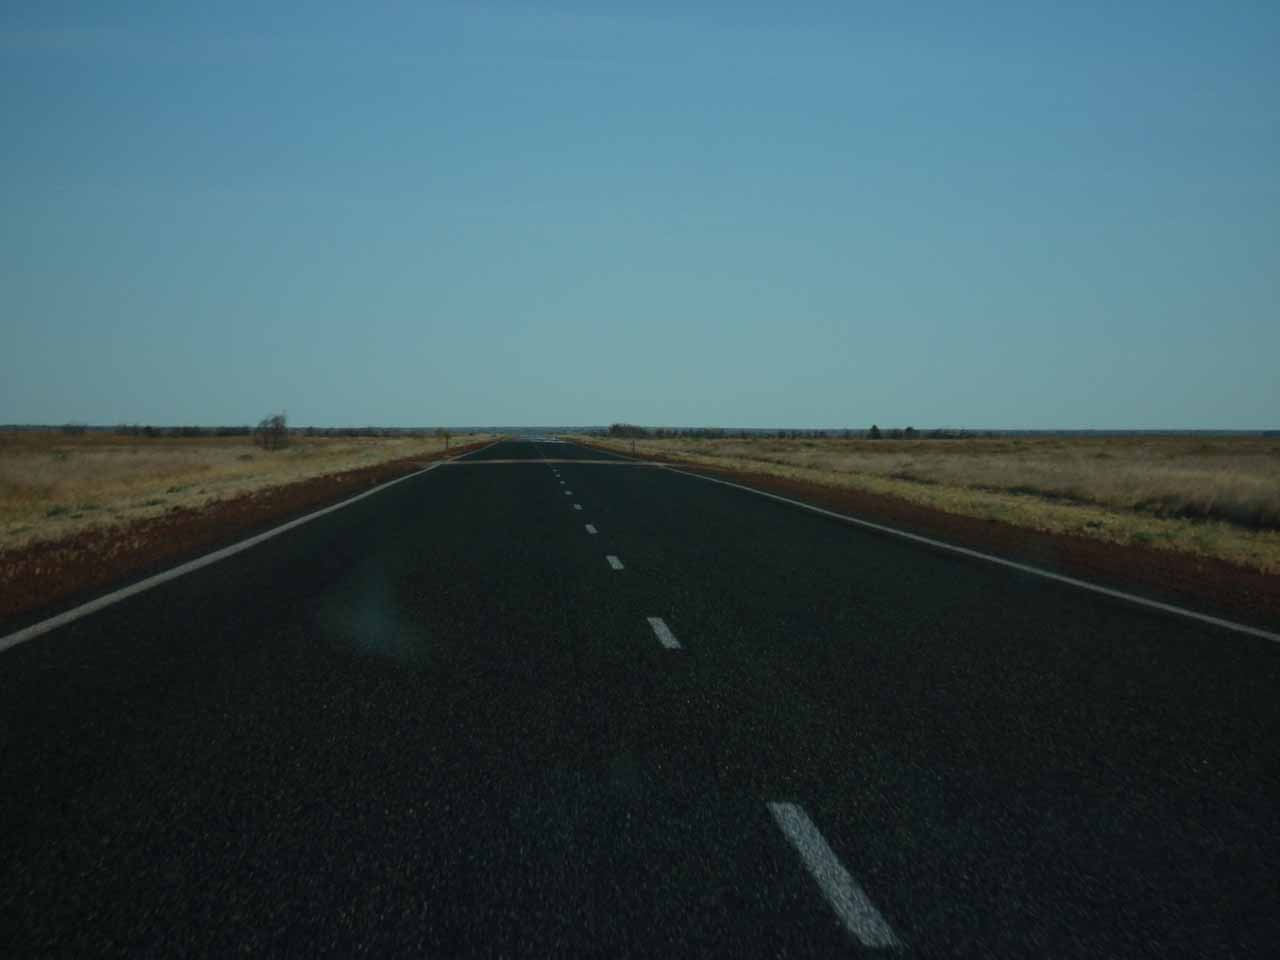 More driving through nothingness along the Northern Hwy